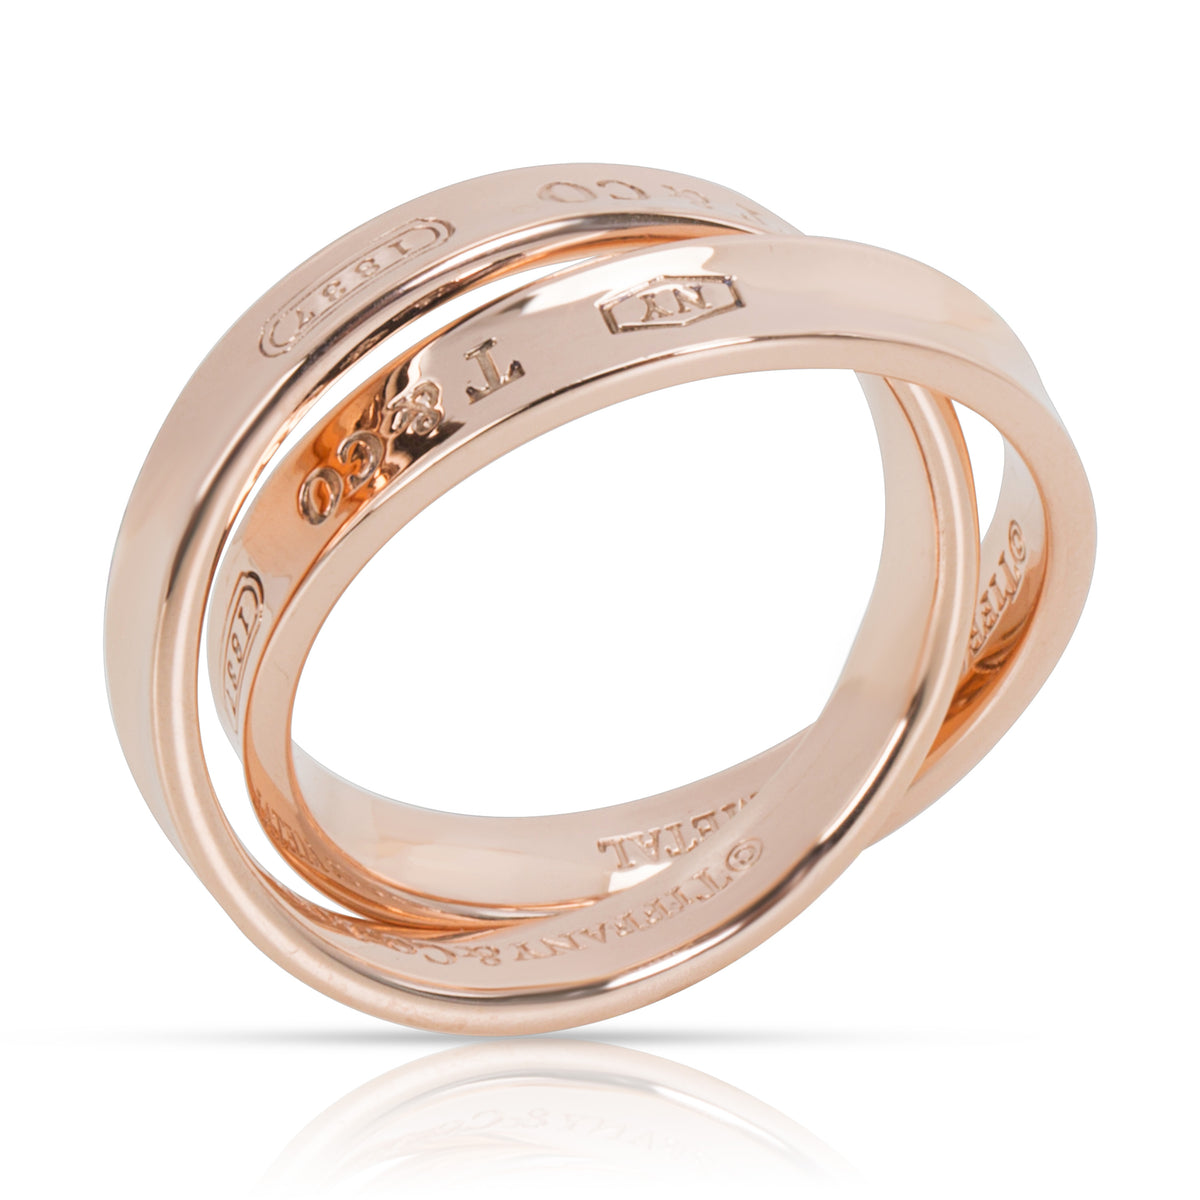 Tiffany & Co. 1837 Rubedo Interlocking Circles Ring in 8K Rose Gold